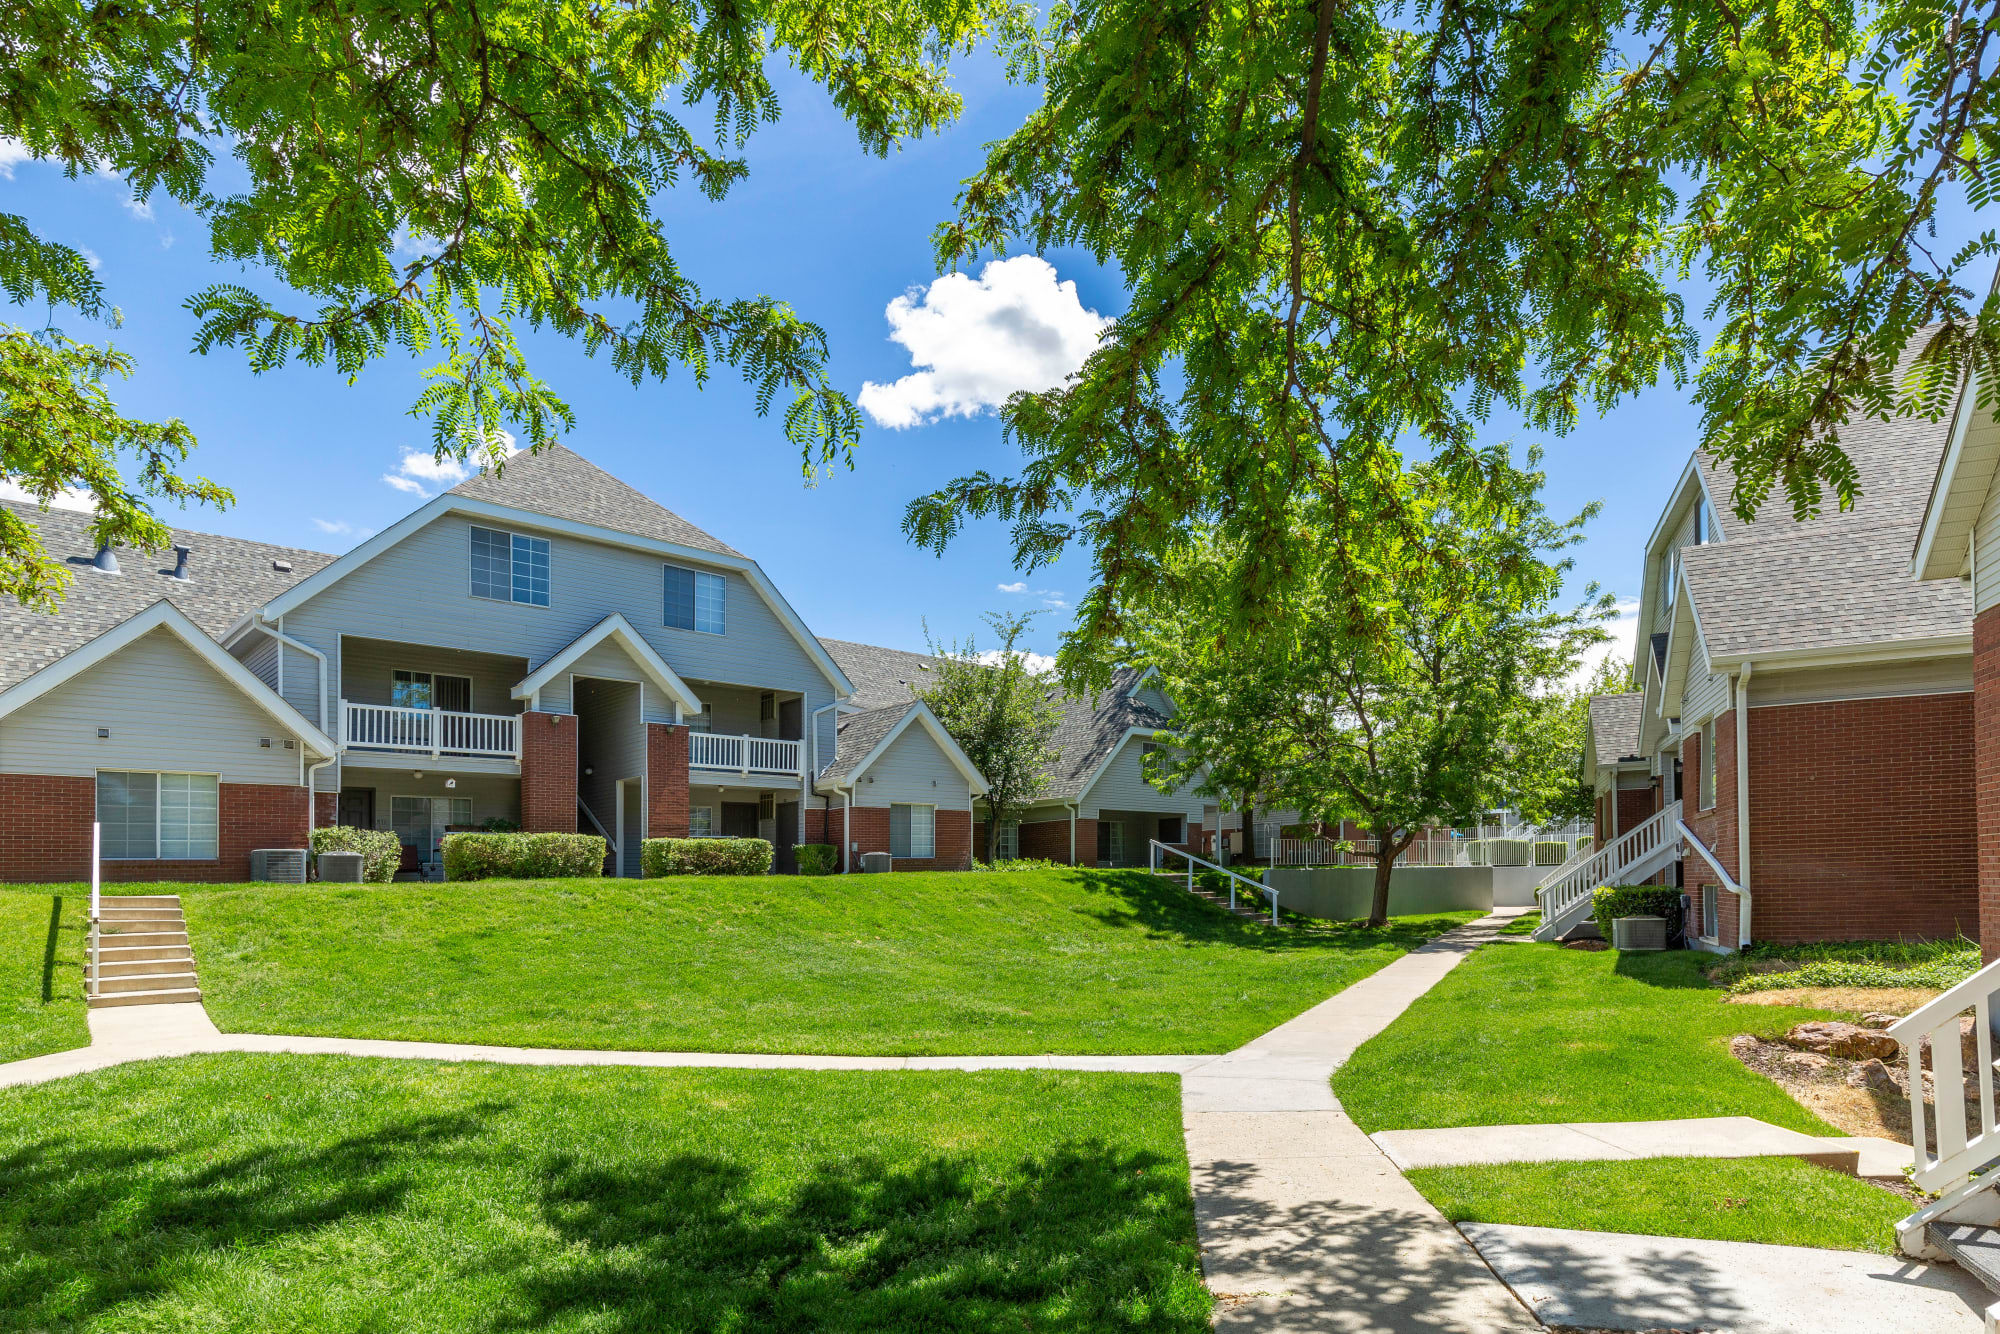 Enjoy the beautiful landscaping at Windgate Apartments in Bountiful, Utah